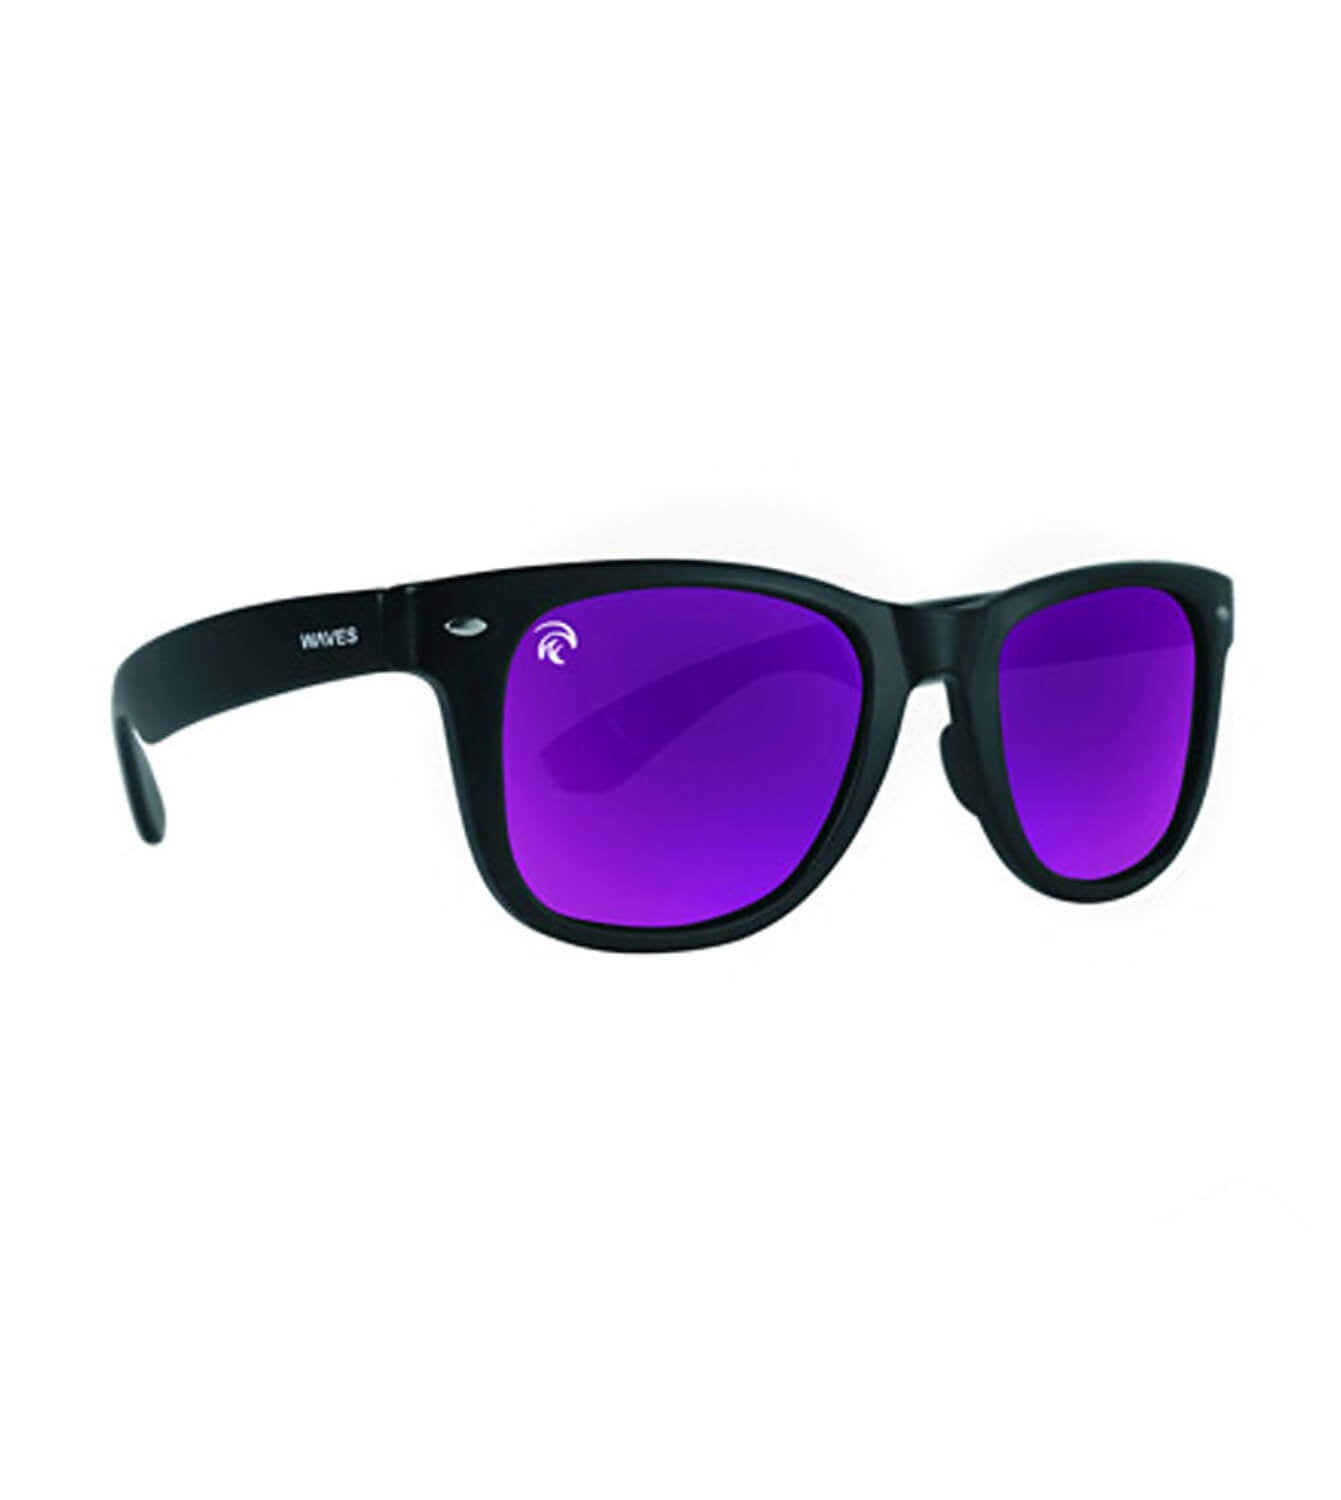 WAVES GEAR CLASSIC POLARIZED FLOATING SUNGLASSES<